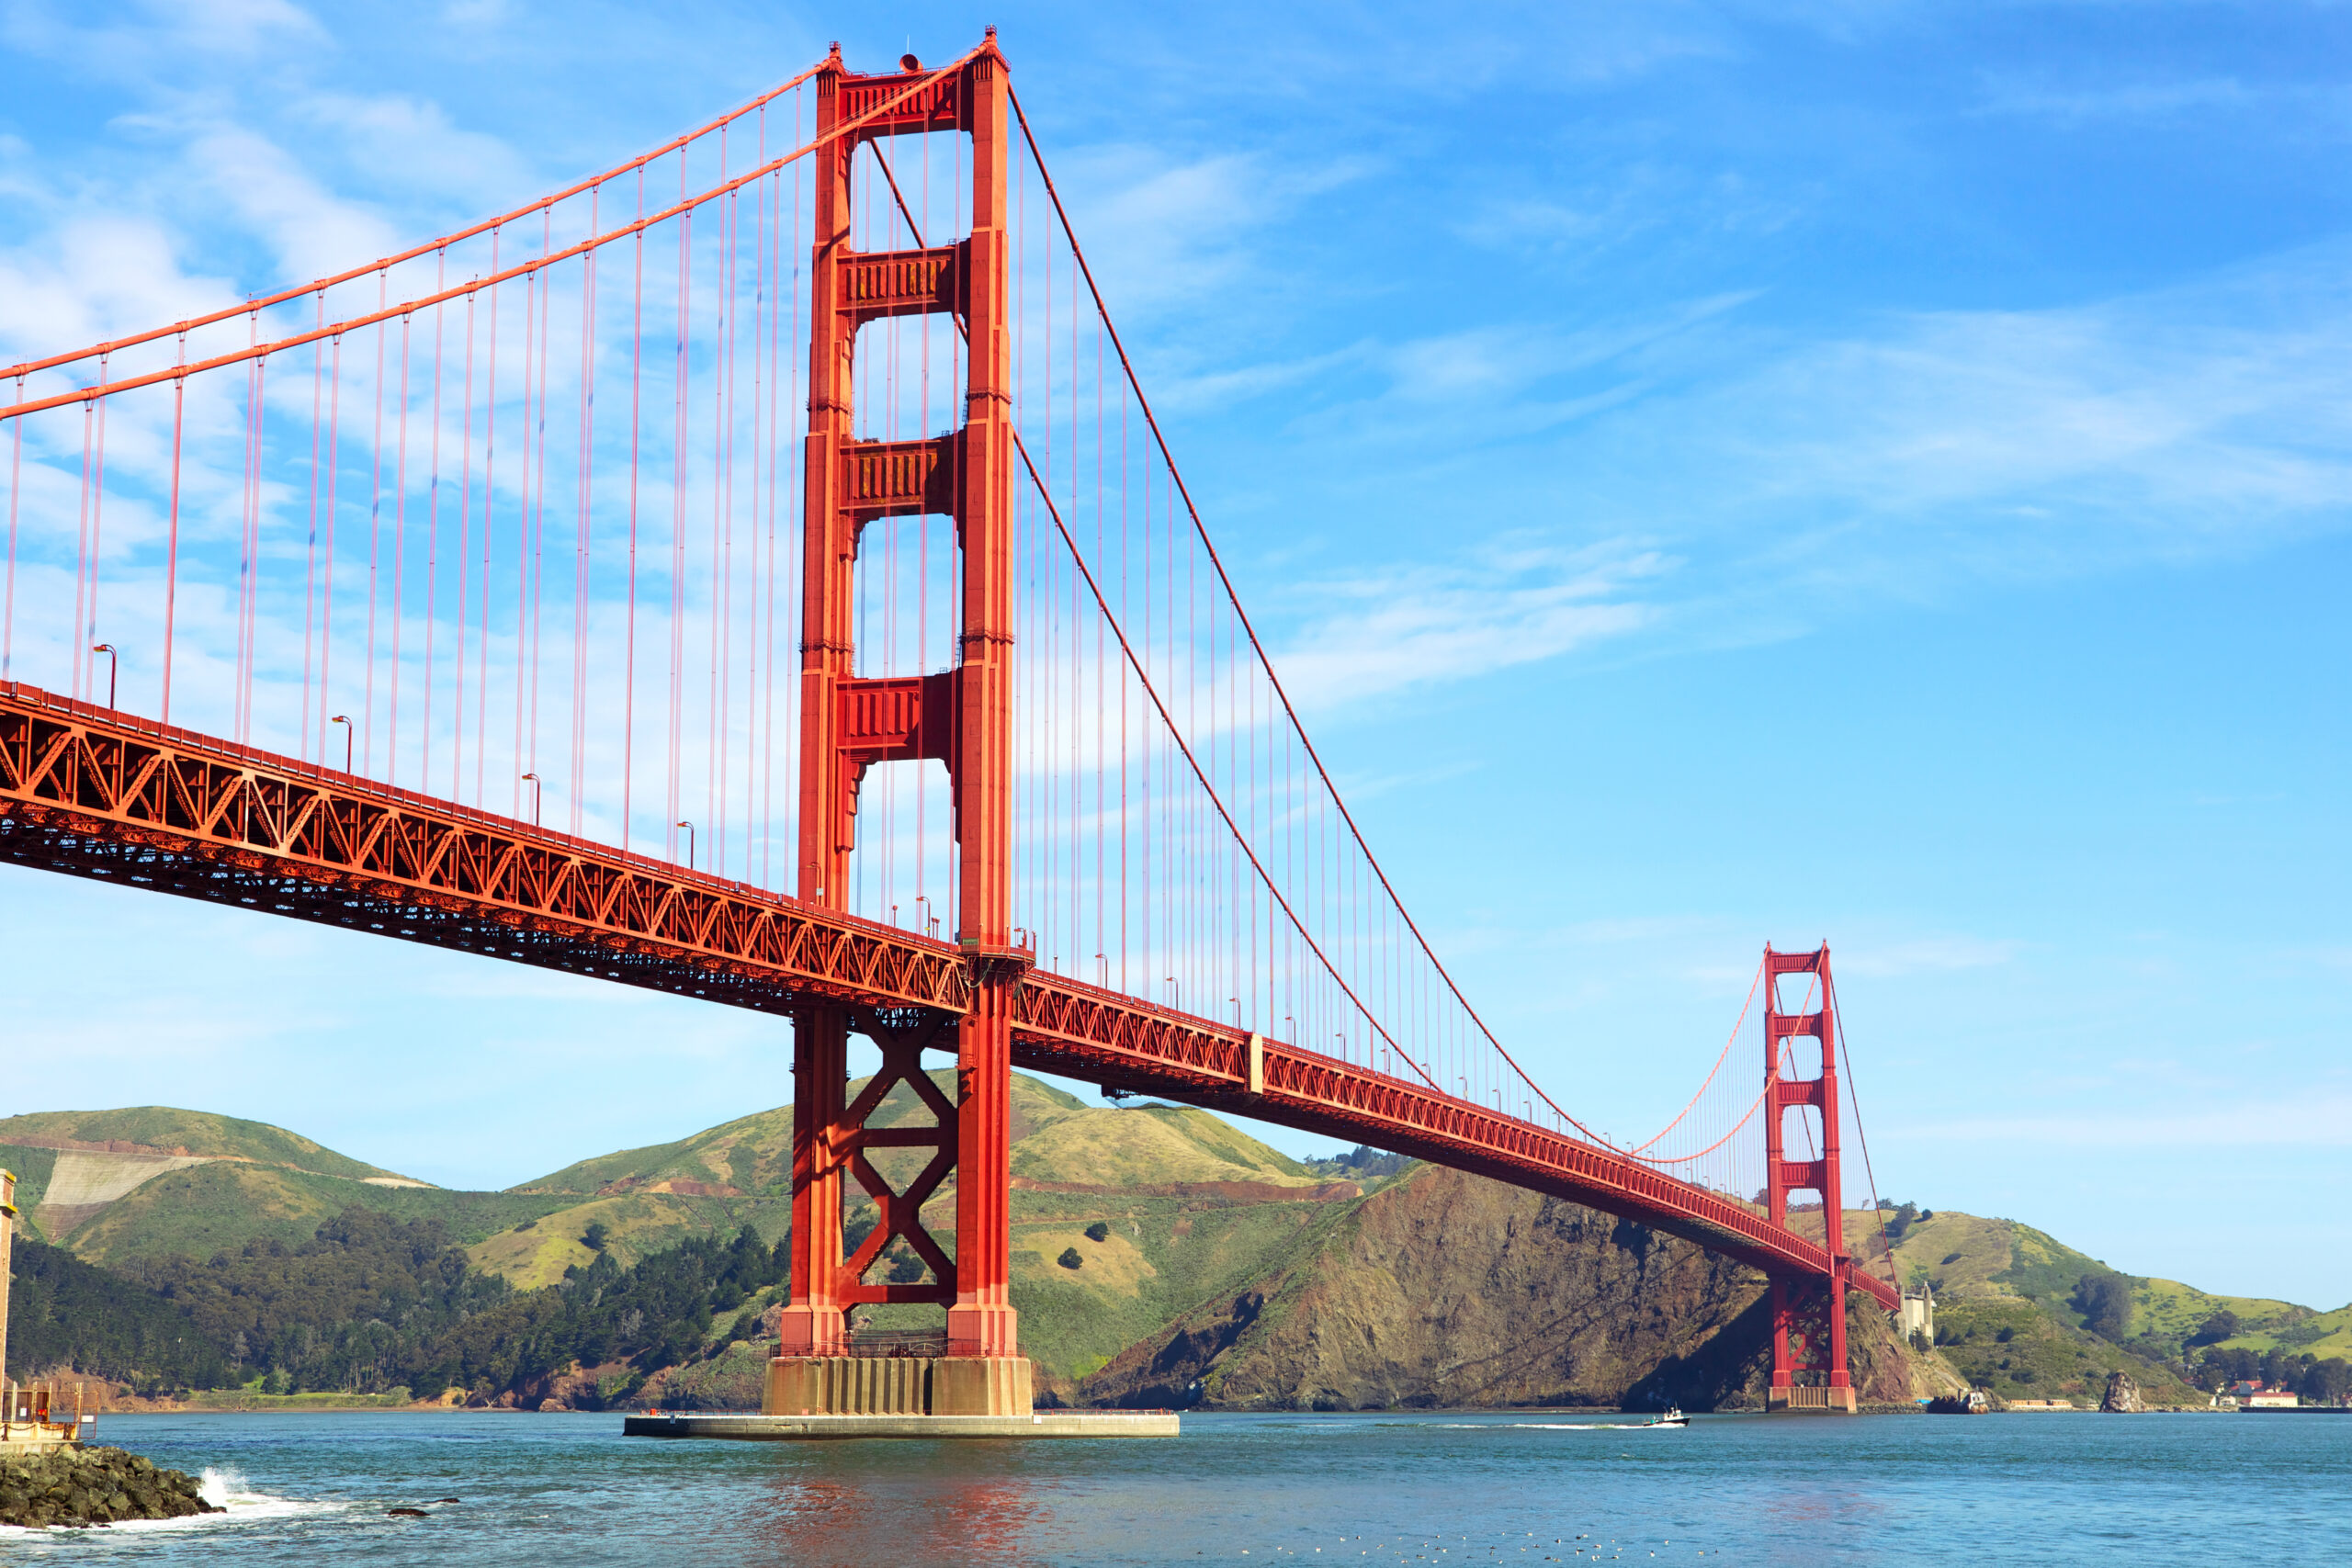 Photo of the Golden Gate Bridge with blue water underneath and gorgeous light blue sky